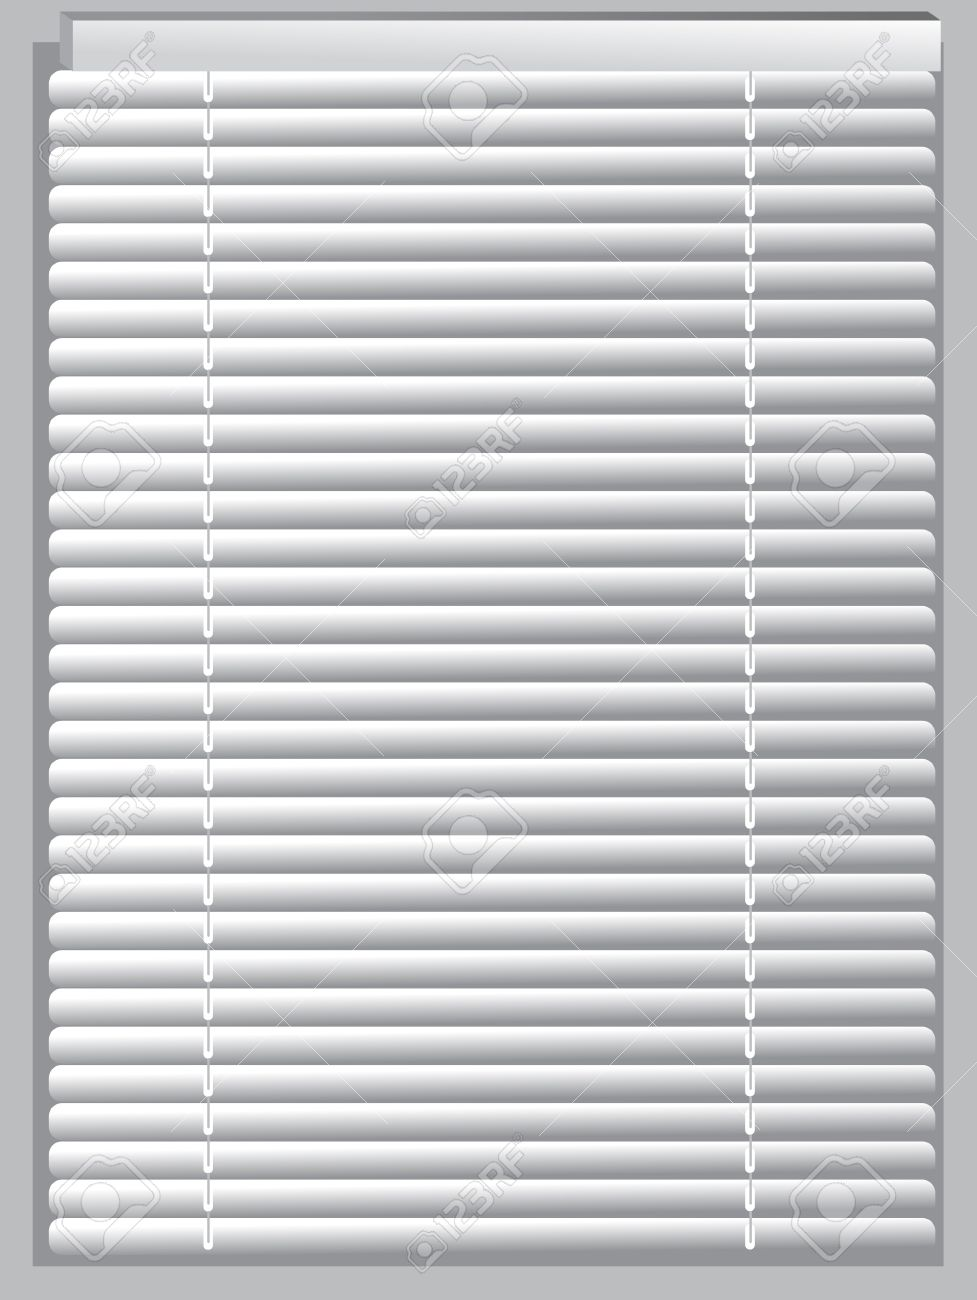 Venetian Blind Royalty Free Cliparts, Vectors, And Stock.